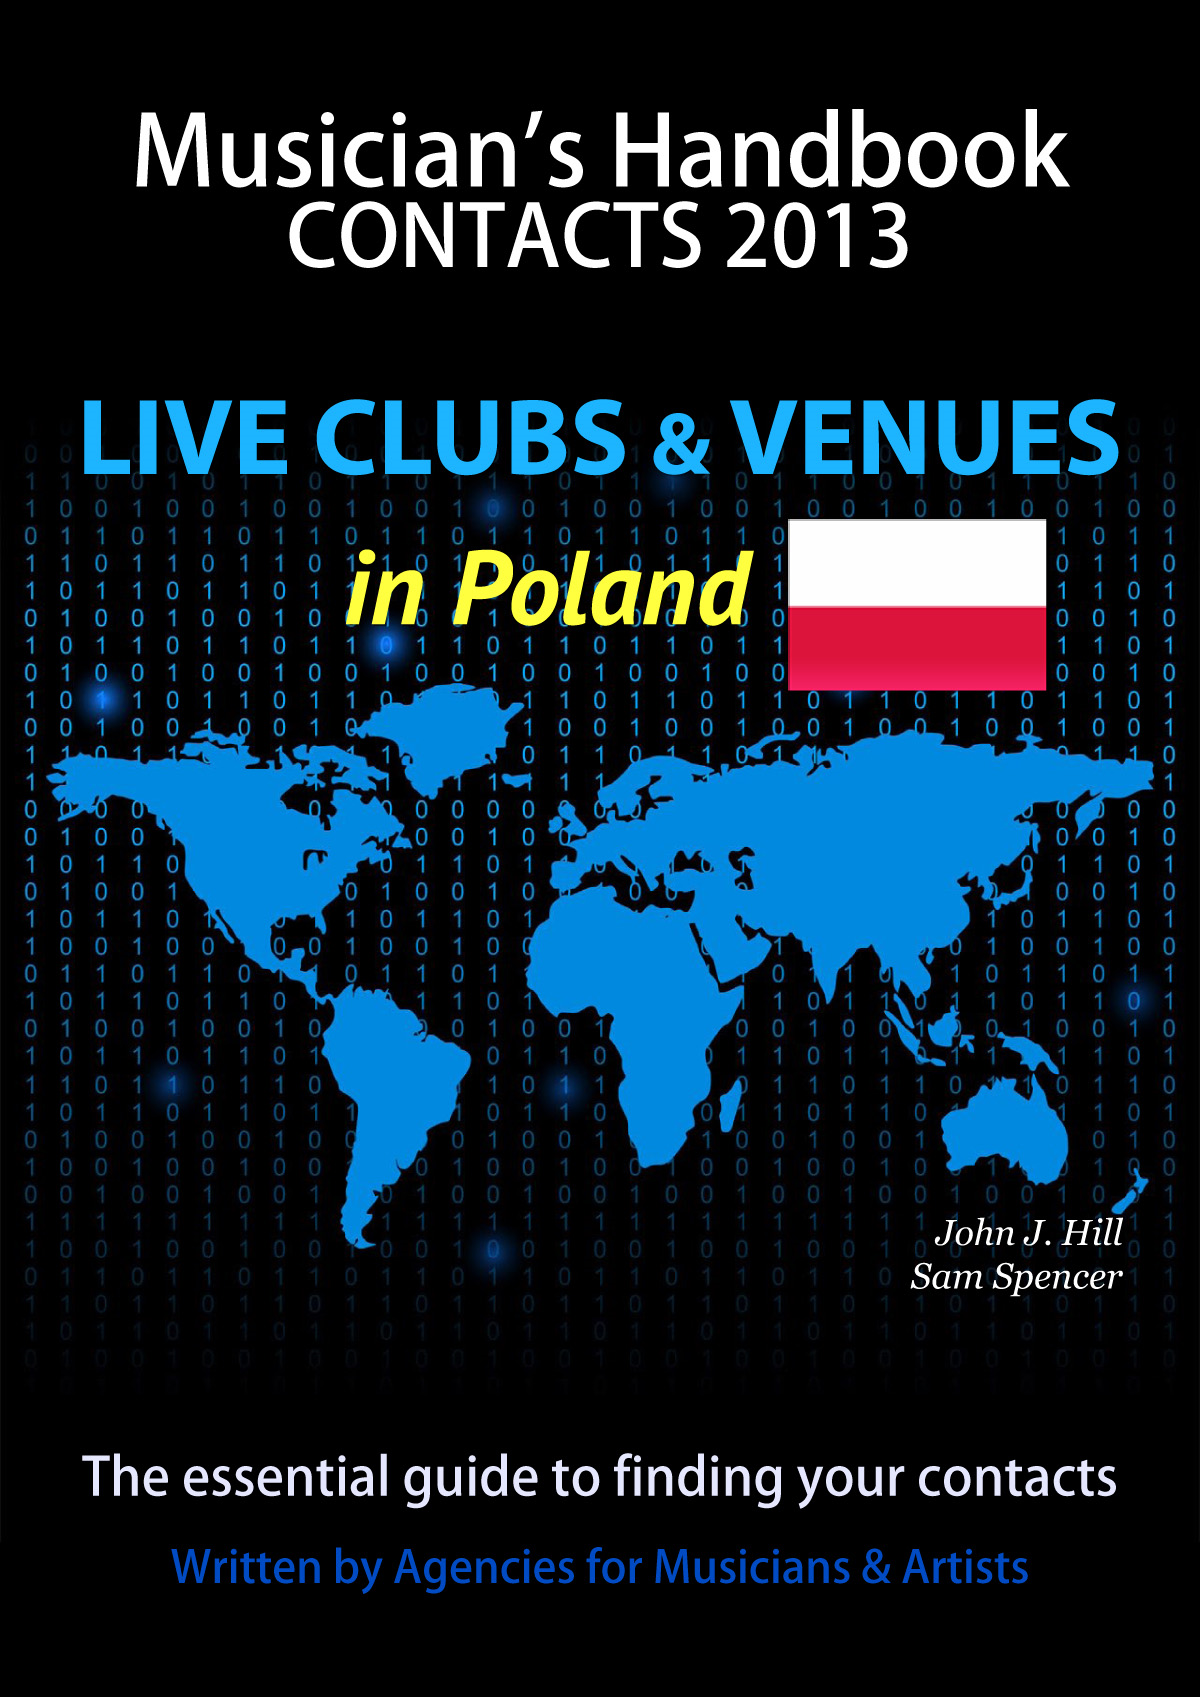 Musician Handbook CONTACTS 2013 - Live Clubs & Venues in POLAND